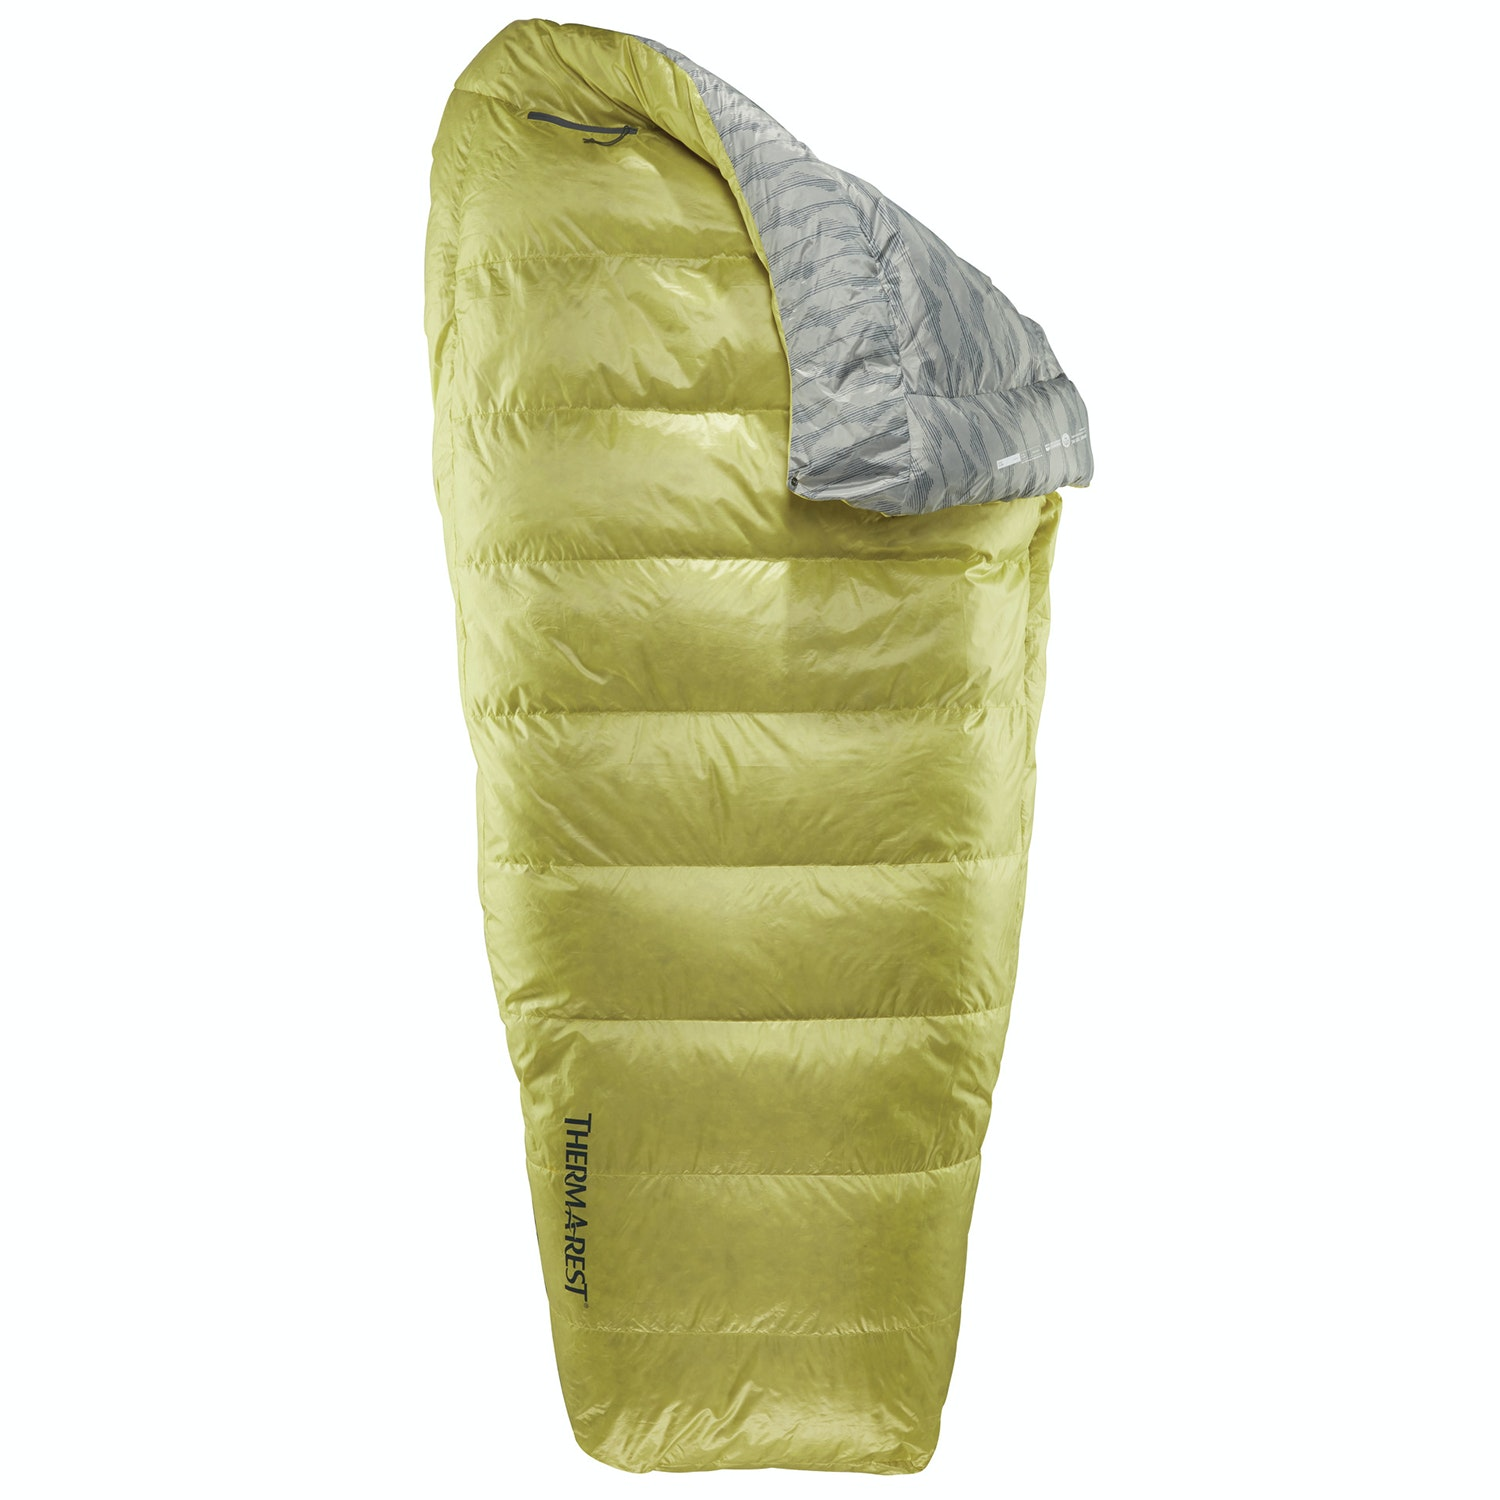 Thermarest Airhead Lite Reg Unisexe Adventure Gear Oreiller-N//Un Taille Unique